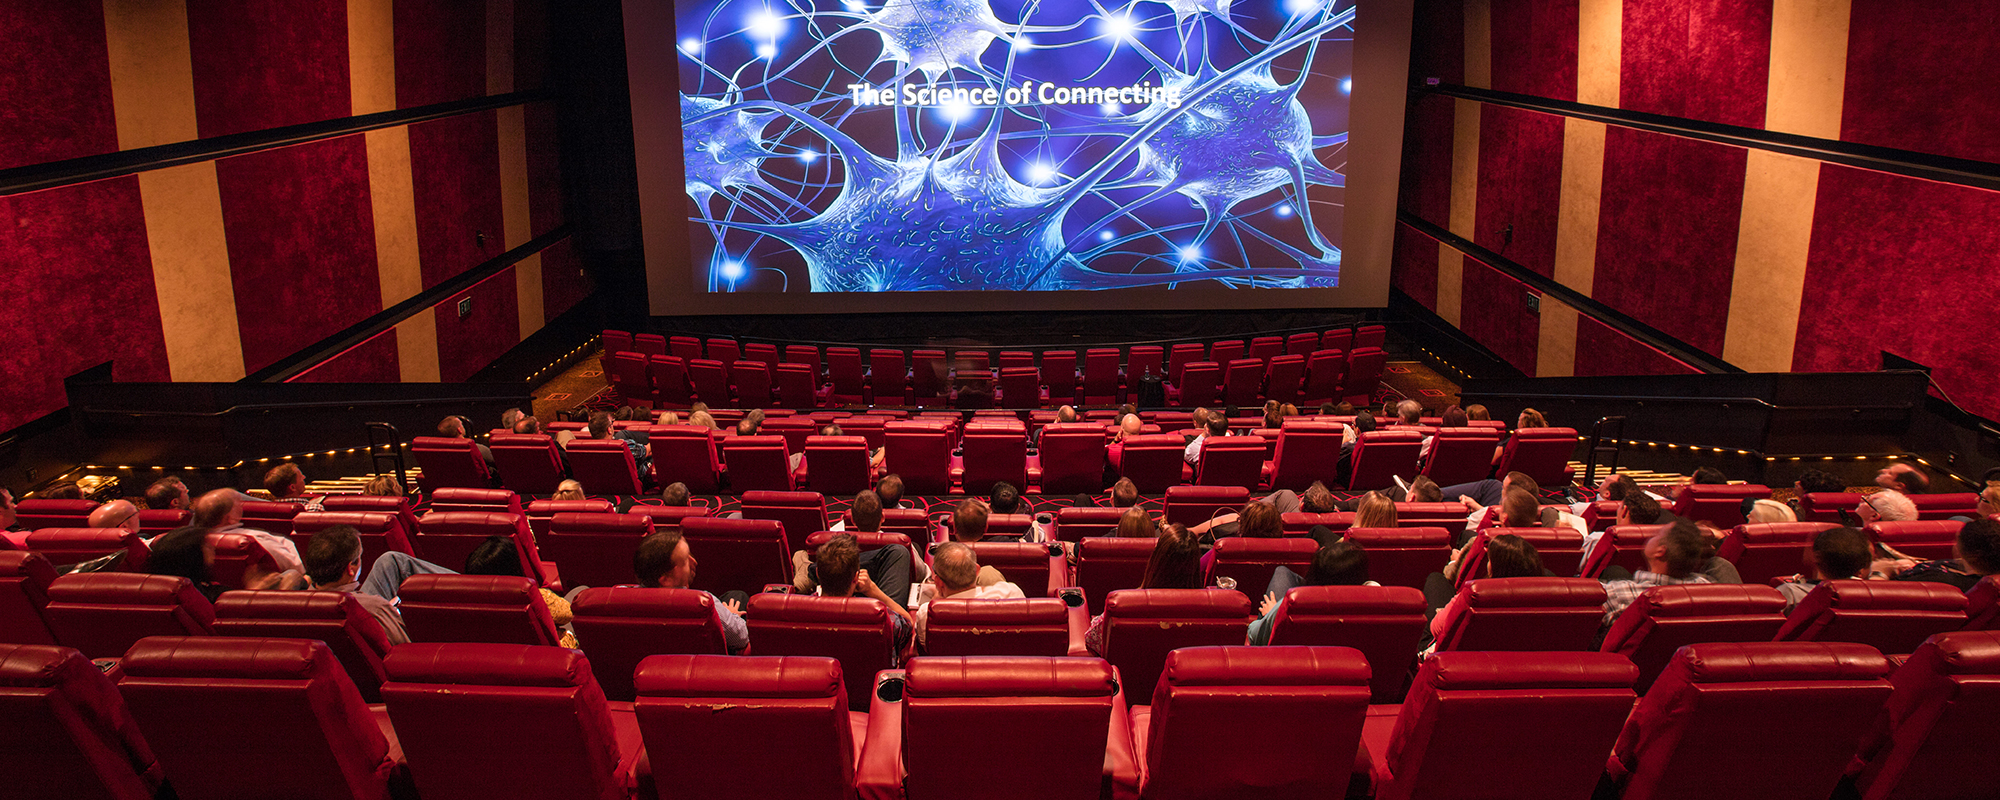 Image result for movie theatre